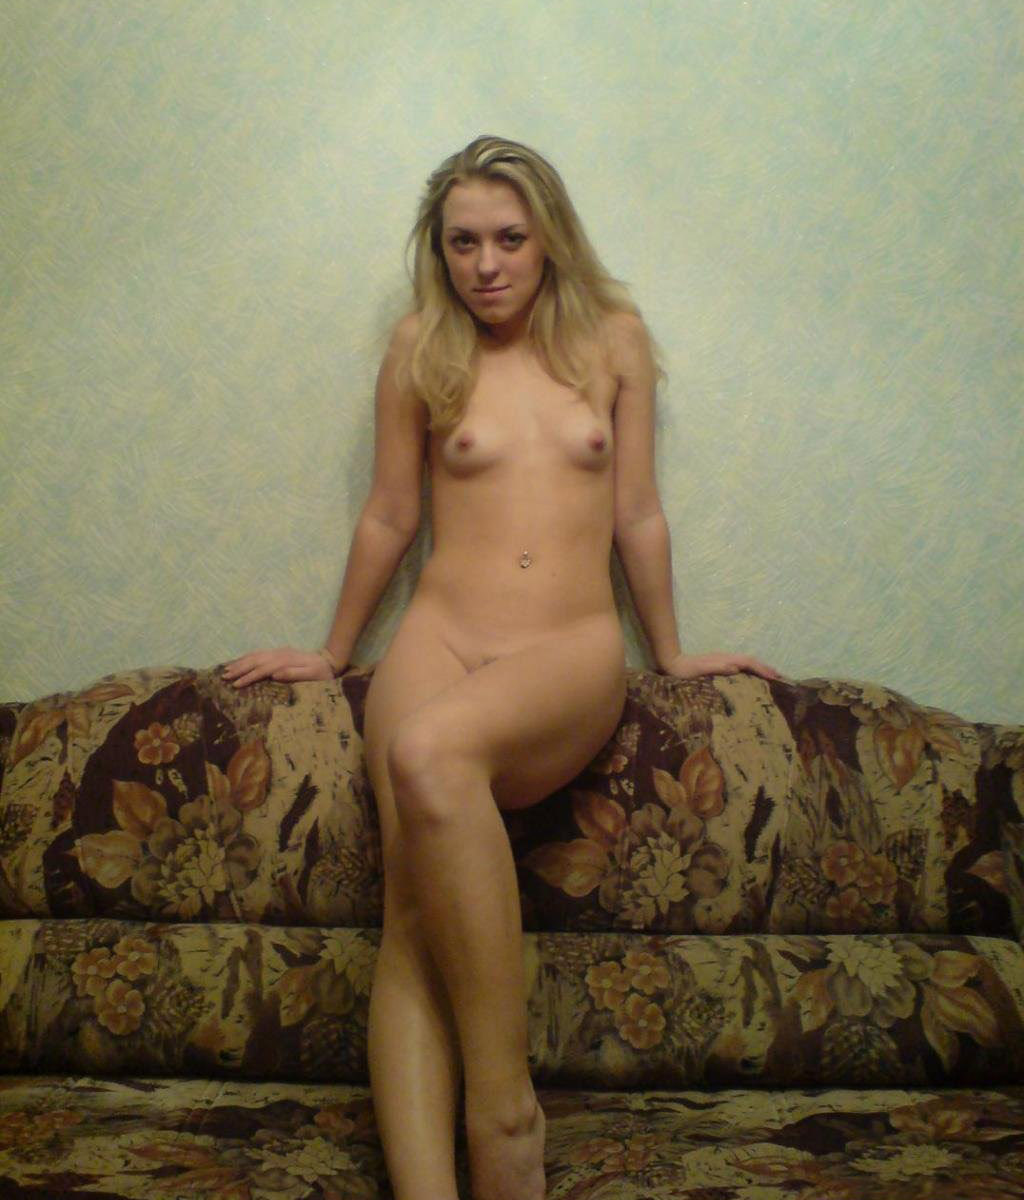 Nice Russian Blonde Girl In Stockings Posing At Home -8870